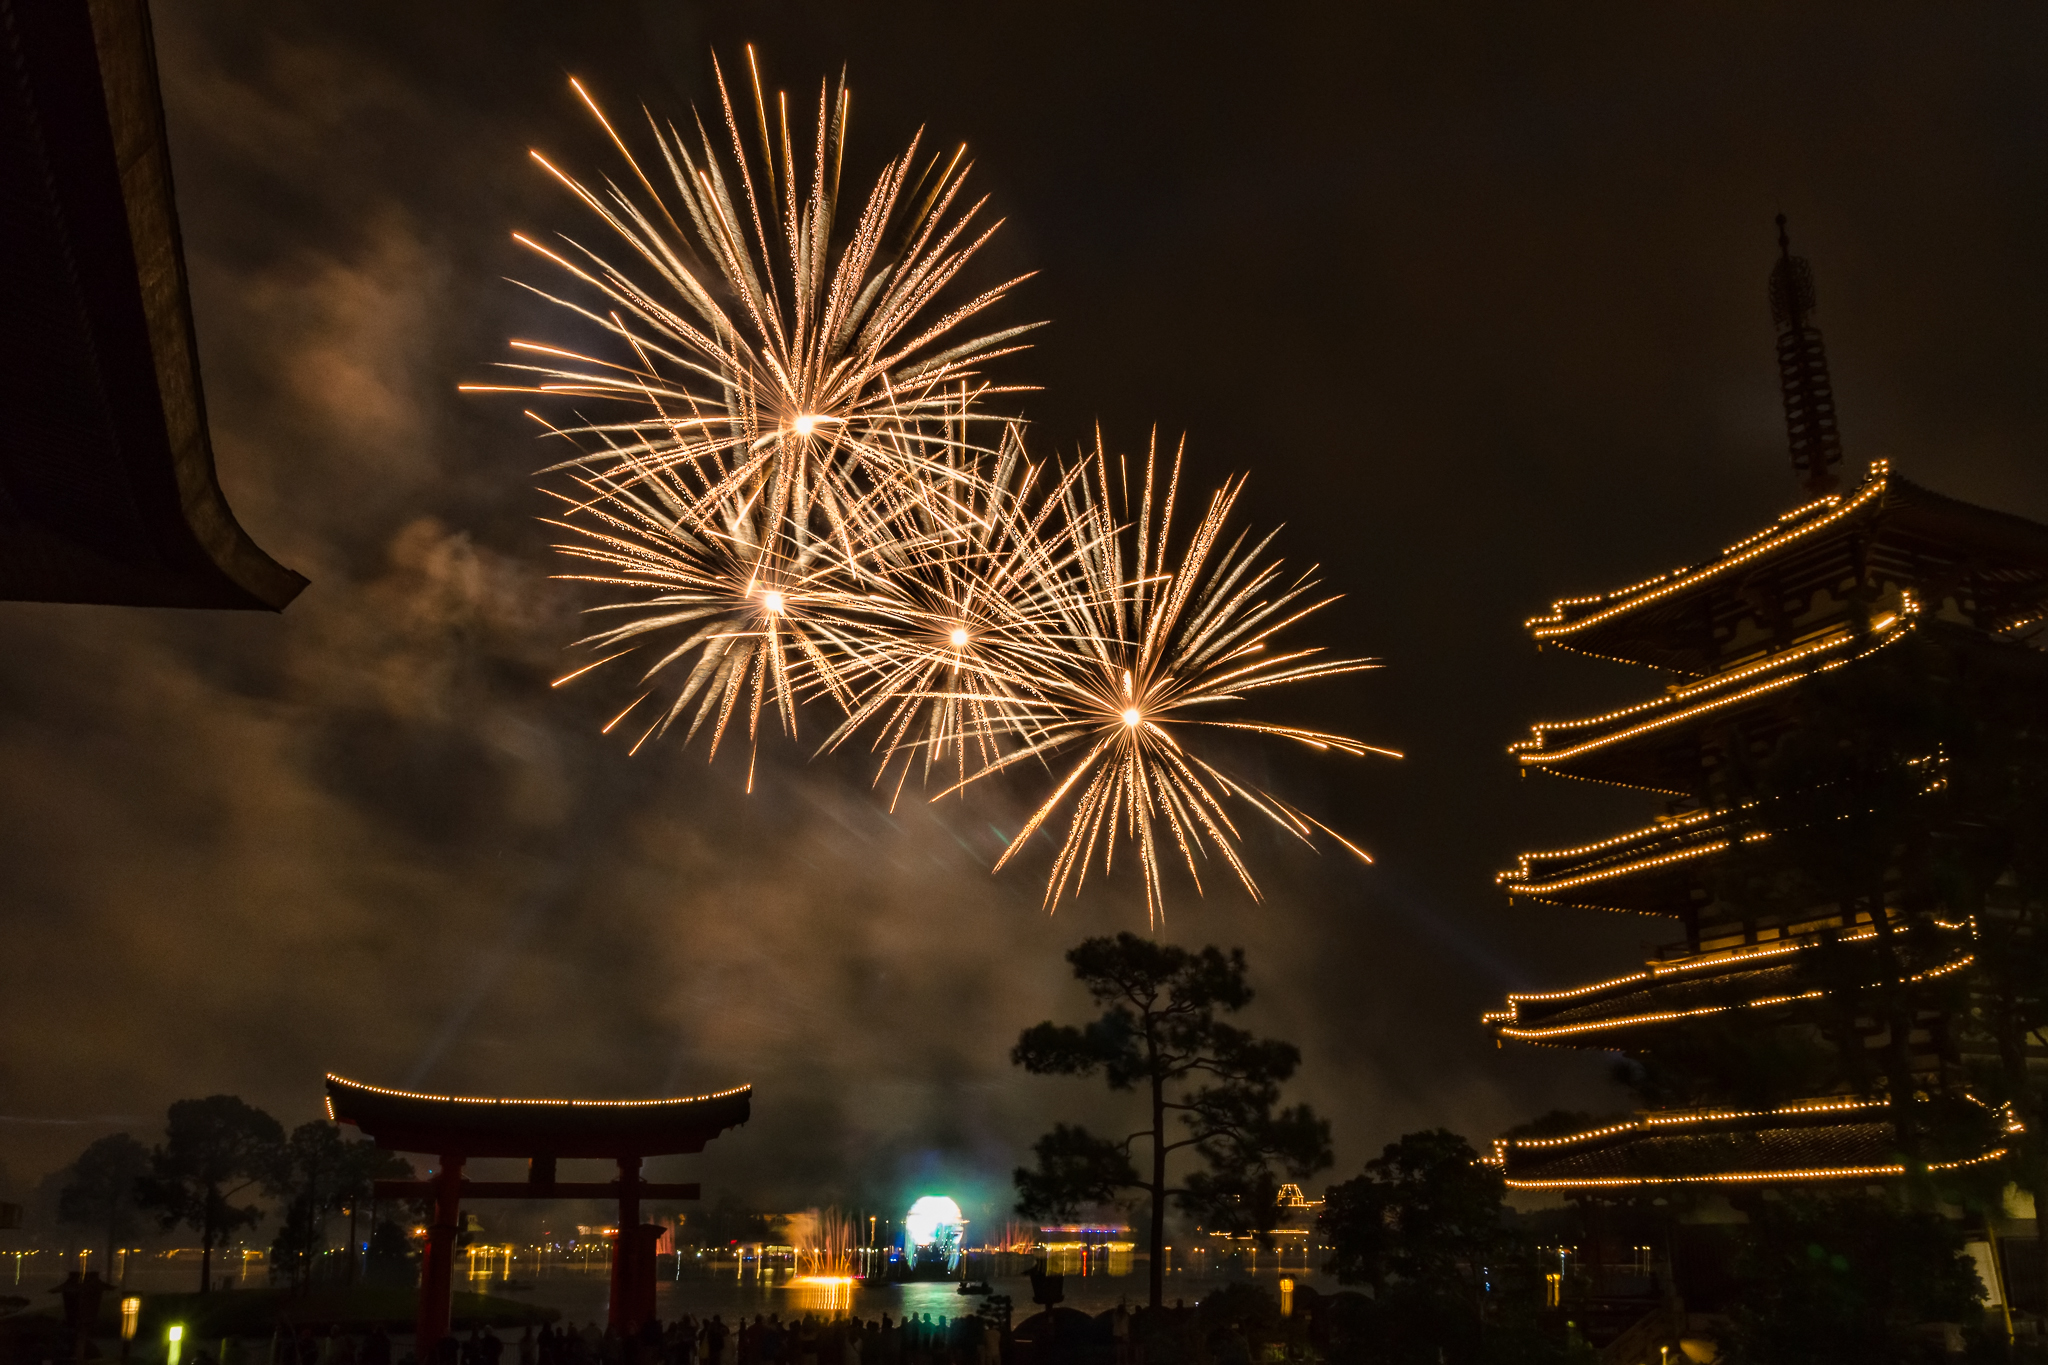 Illuminations from Japan Nikon D5100, Sigma 17-70mm f/2.8-4, 3s, 17mm, f/16, ISO 800